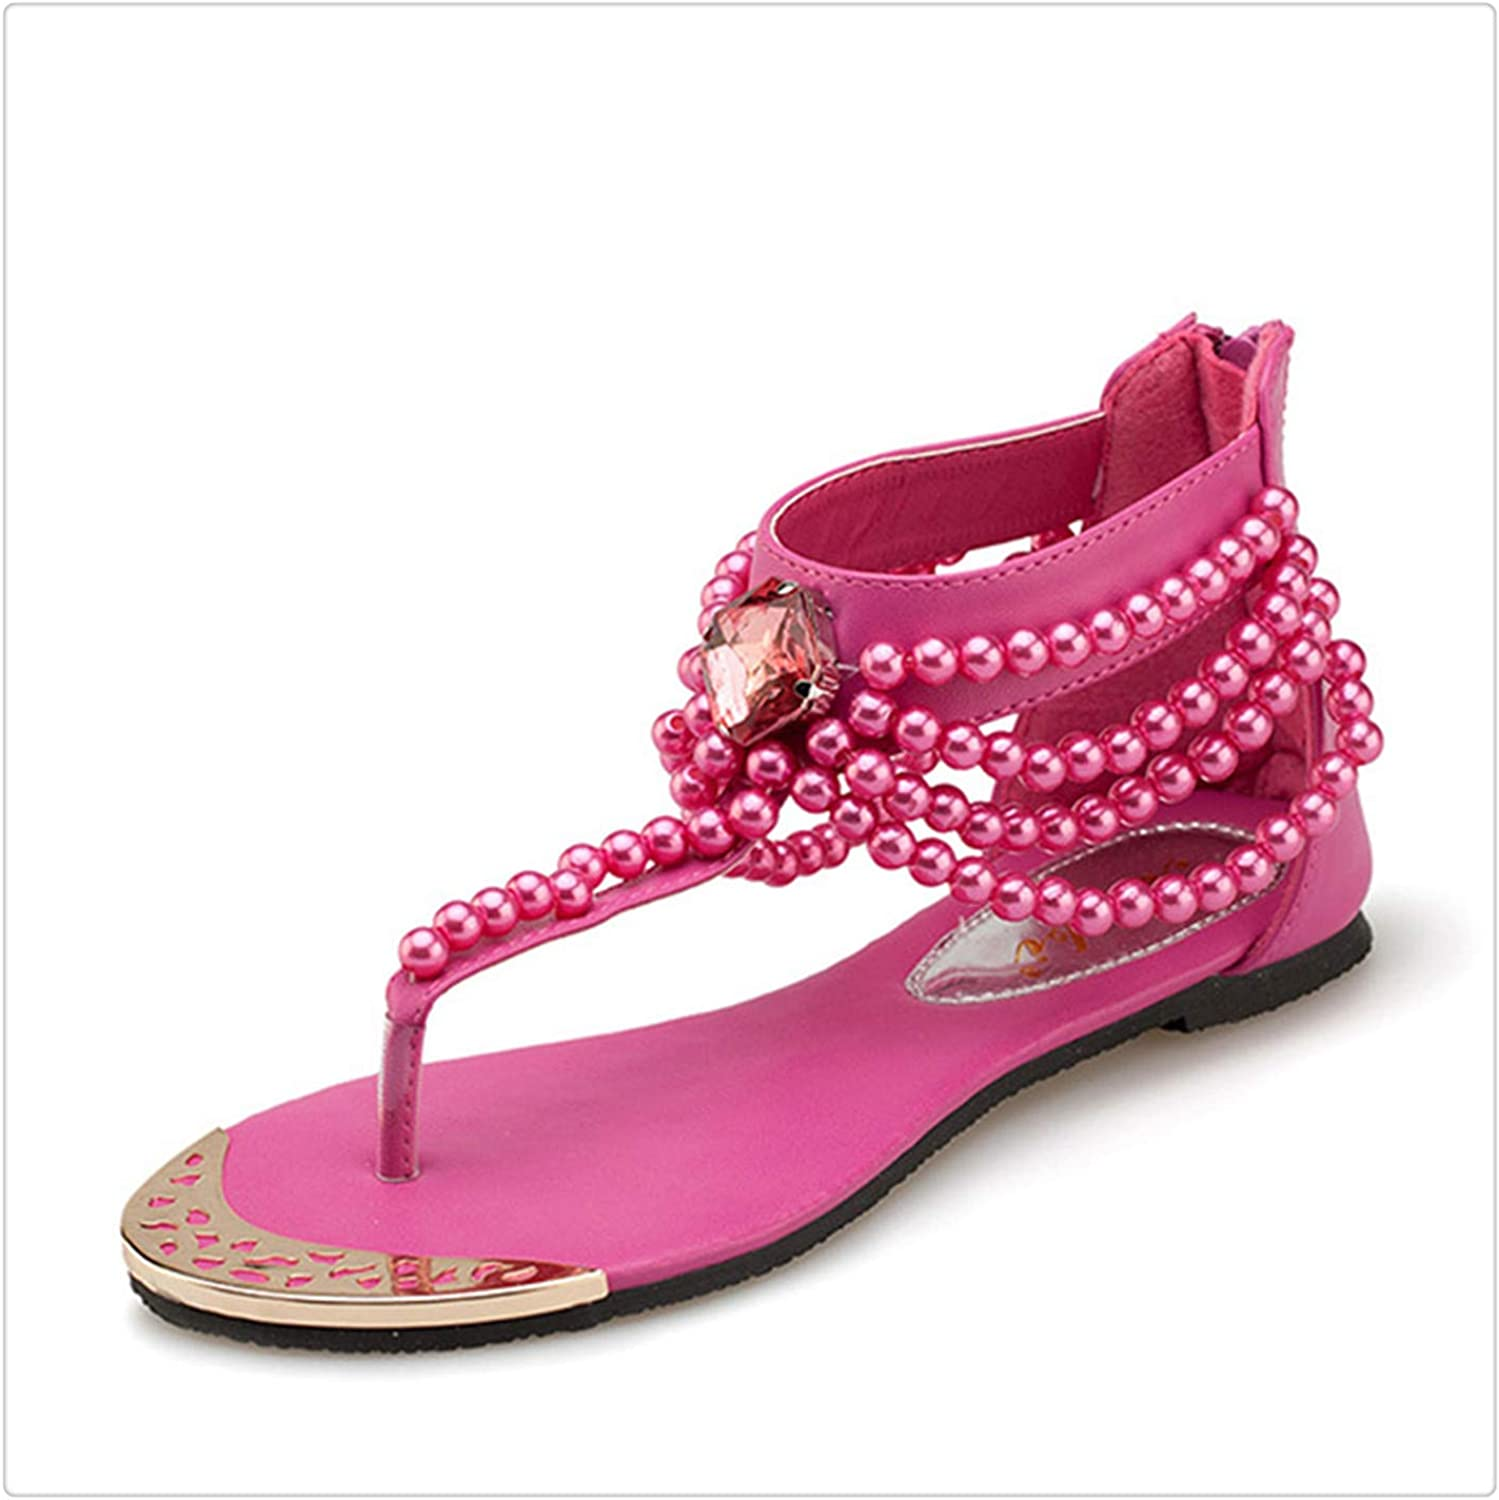 DOUSTY& Bling Sandals Women Ankle Strap Flip Flops shoes Rhinestone Pearl Casual Flats